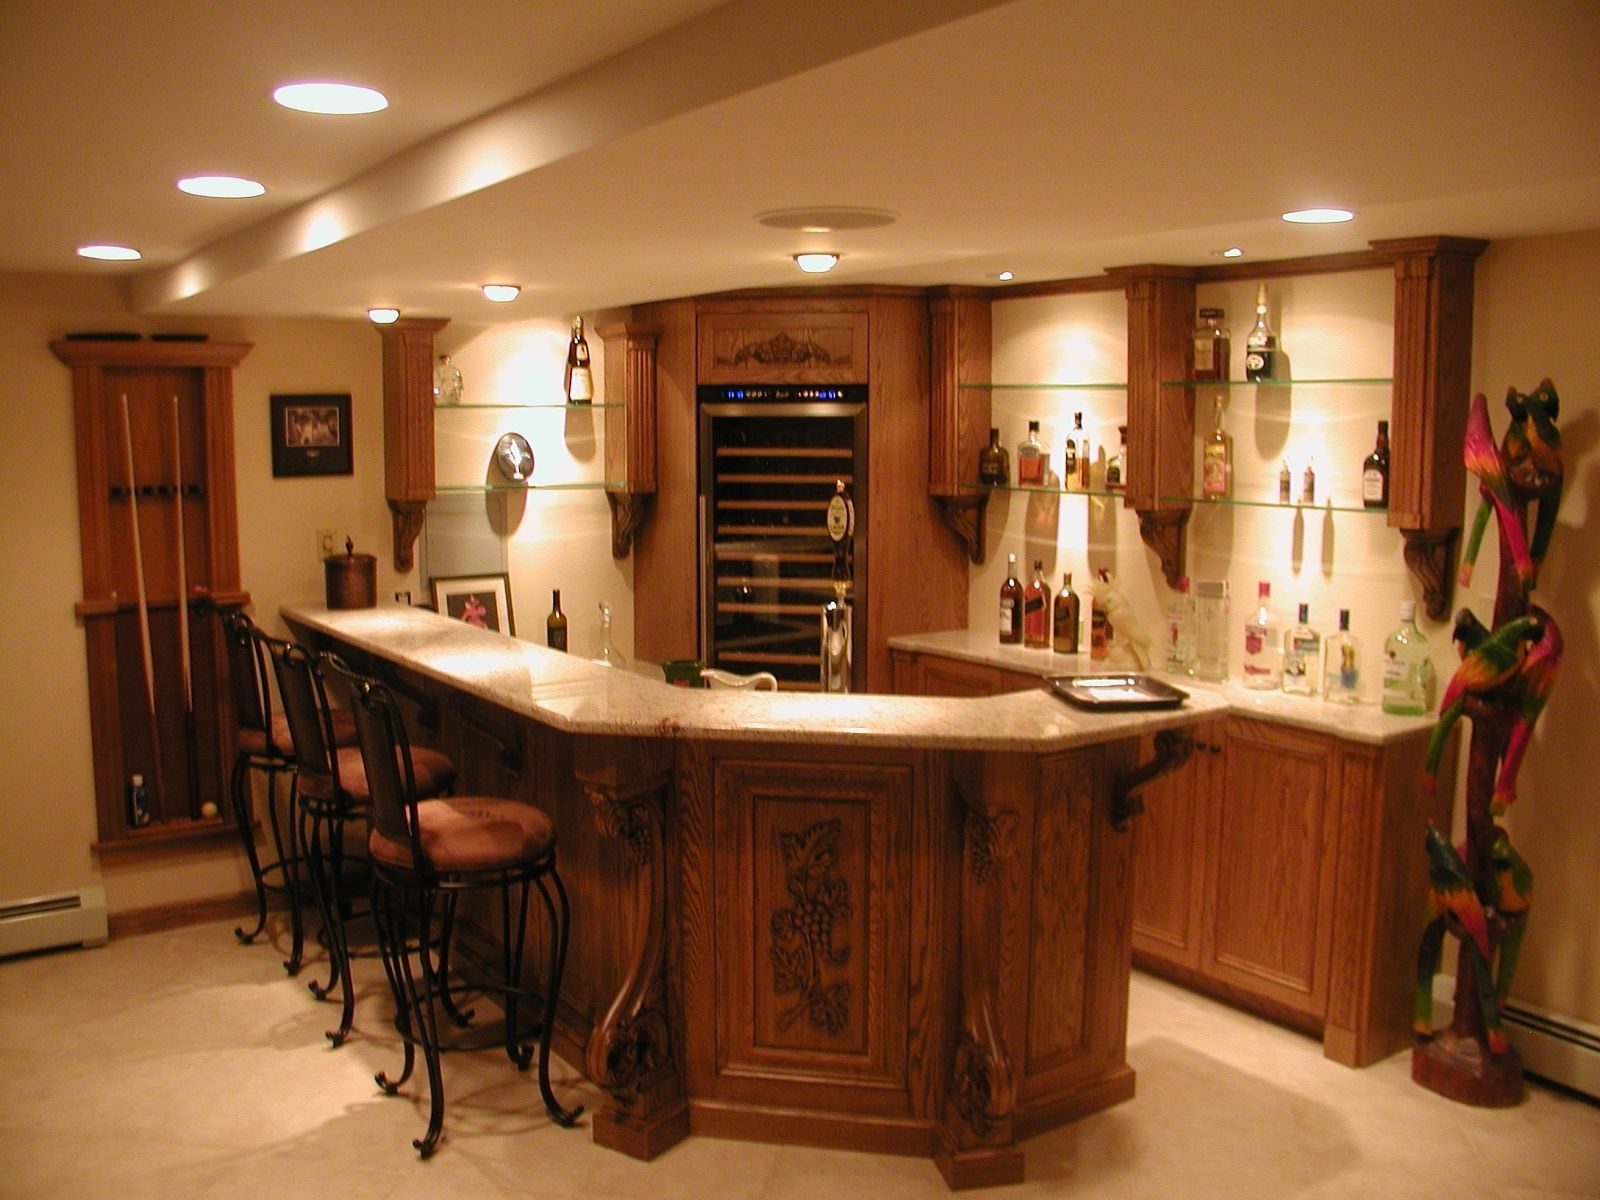 Craftsman House Designs Custom Oak Bar With Granite Top And Enkeboll Mouldings By